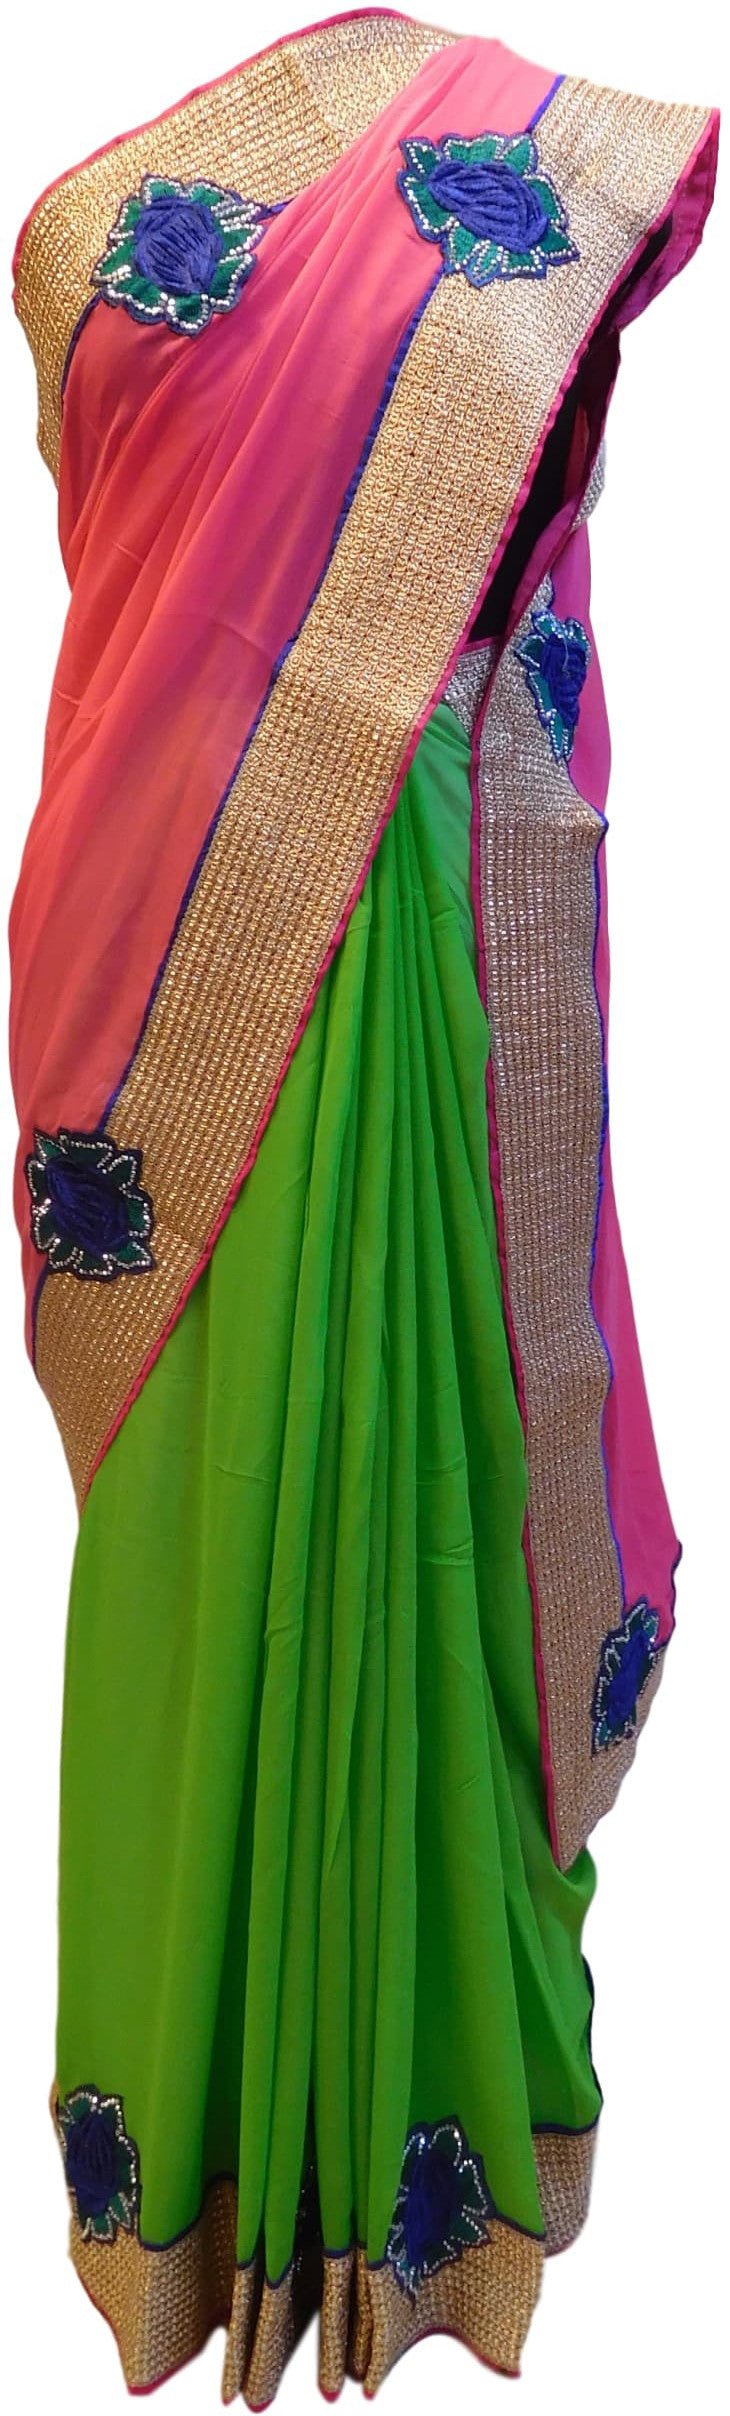 Pink & Green Designer Georgette (Viscos) Sari Saree